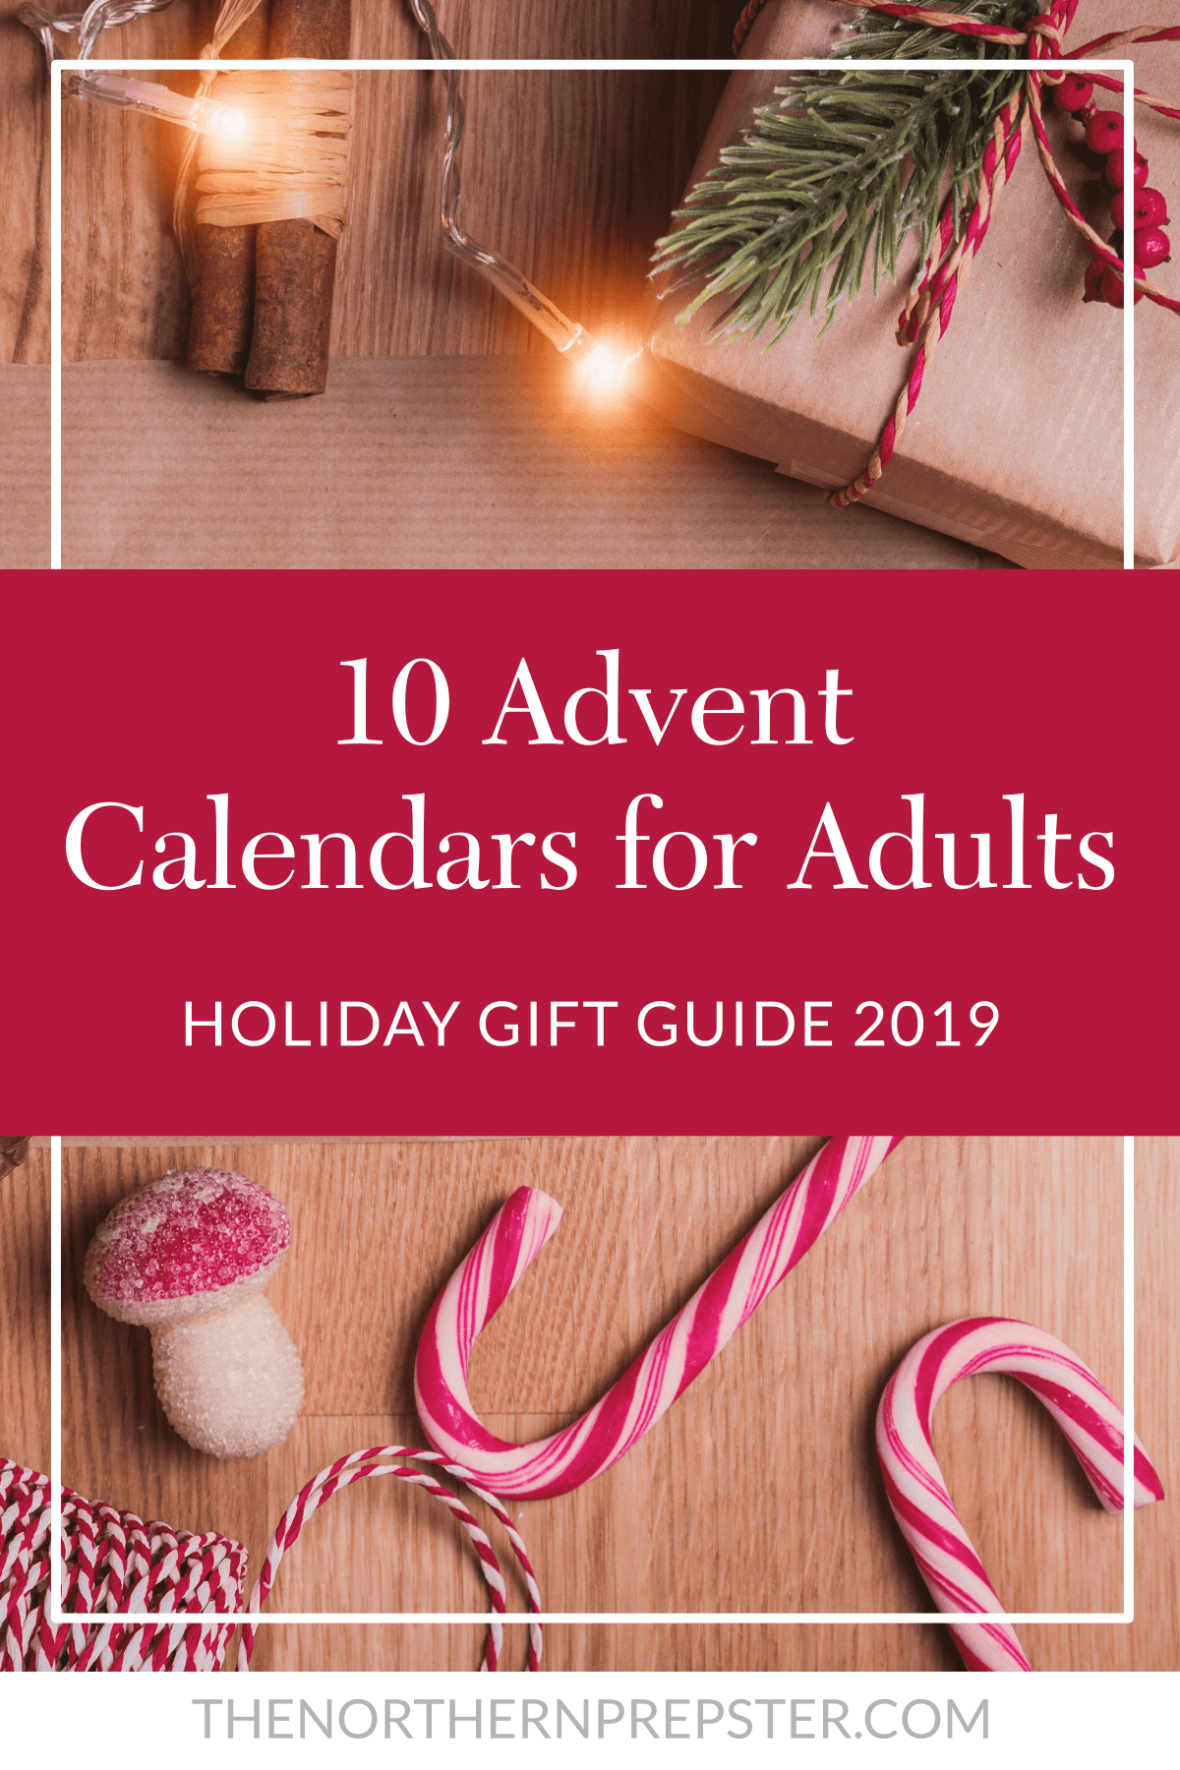 10 Advent Calendars for Adults Holiday Gift Guide 2019